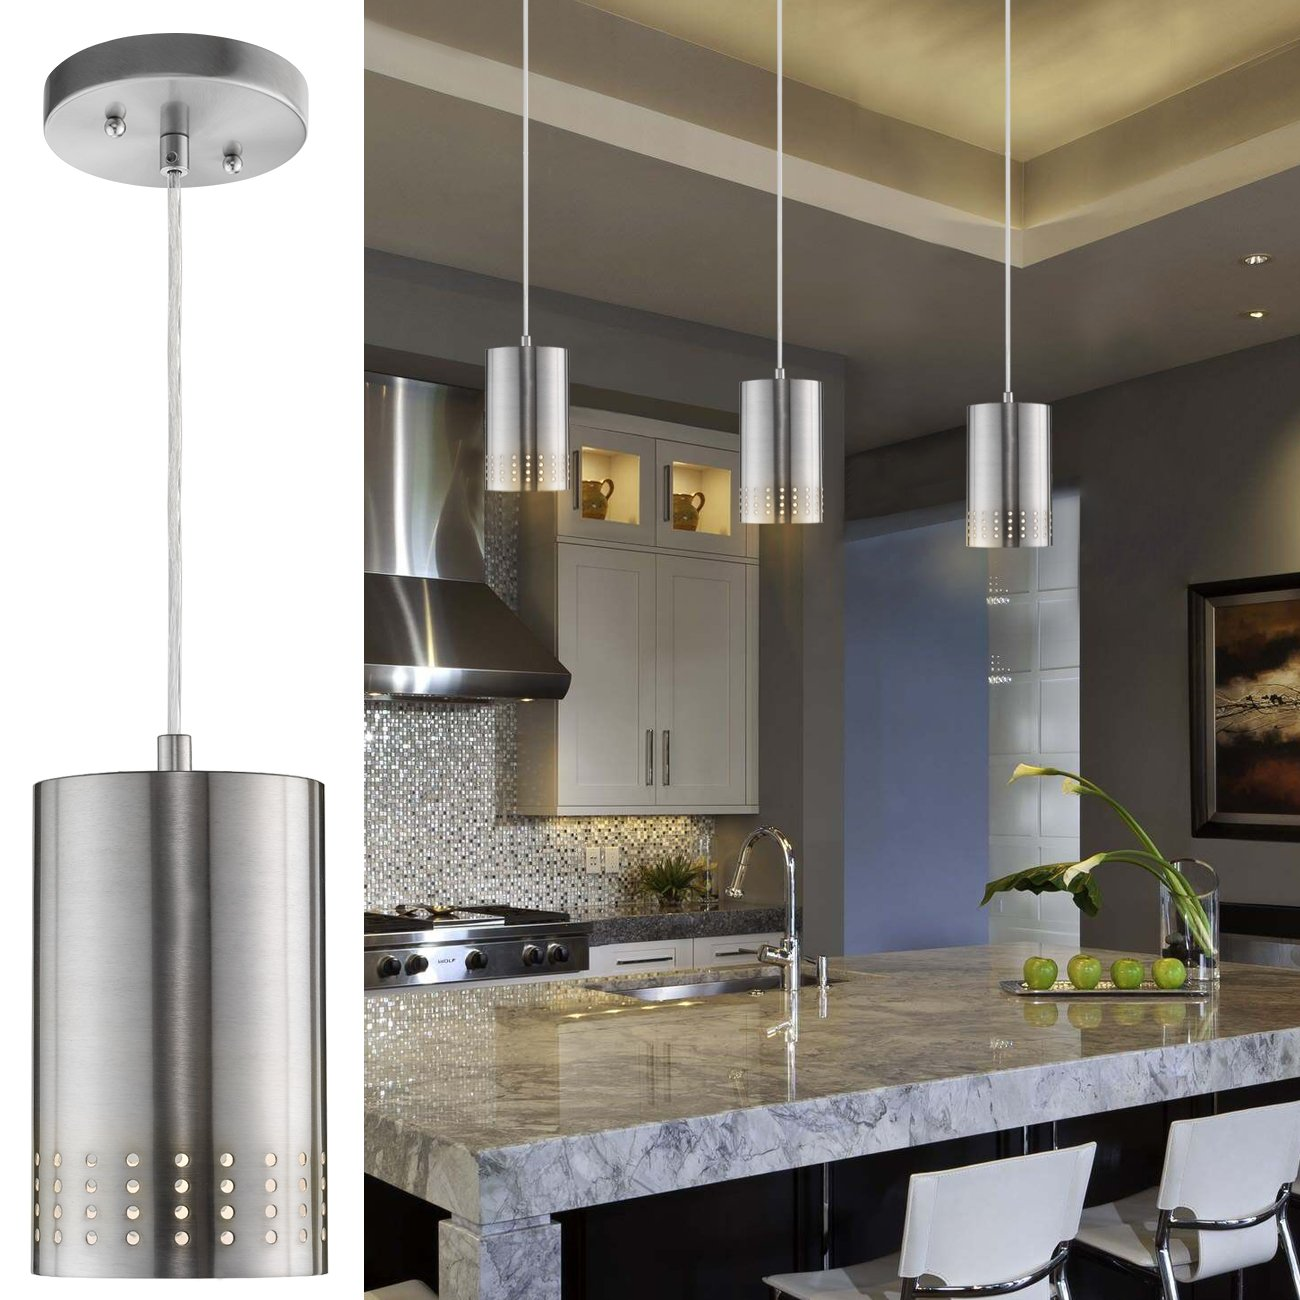 LANROS Adjustable Mini Pendant Light, Modern Hanging Lights with Perforated Cylindrical Metal Shade for Kitchen Island, Living Room, Brushed Nickel Finish, 1-Pack by LANROS